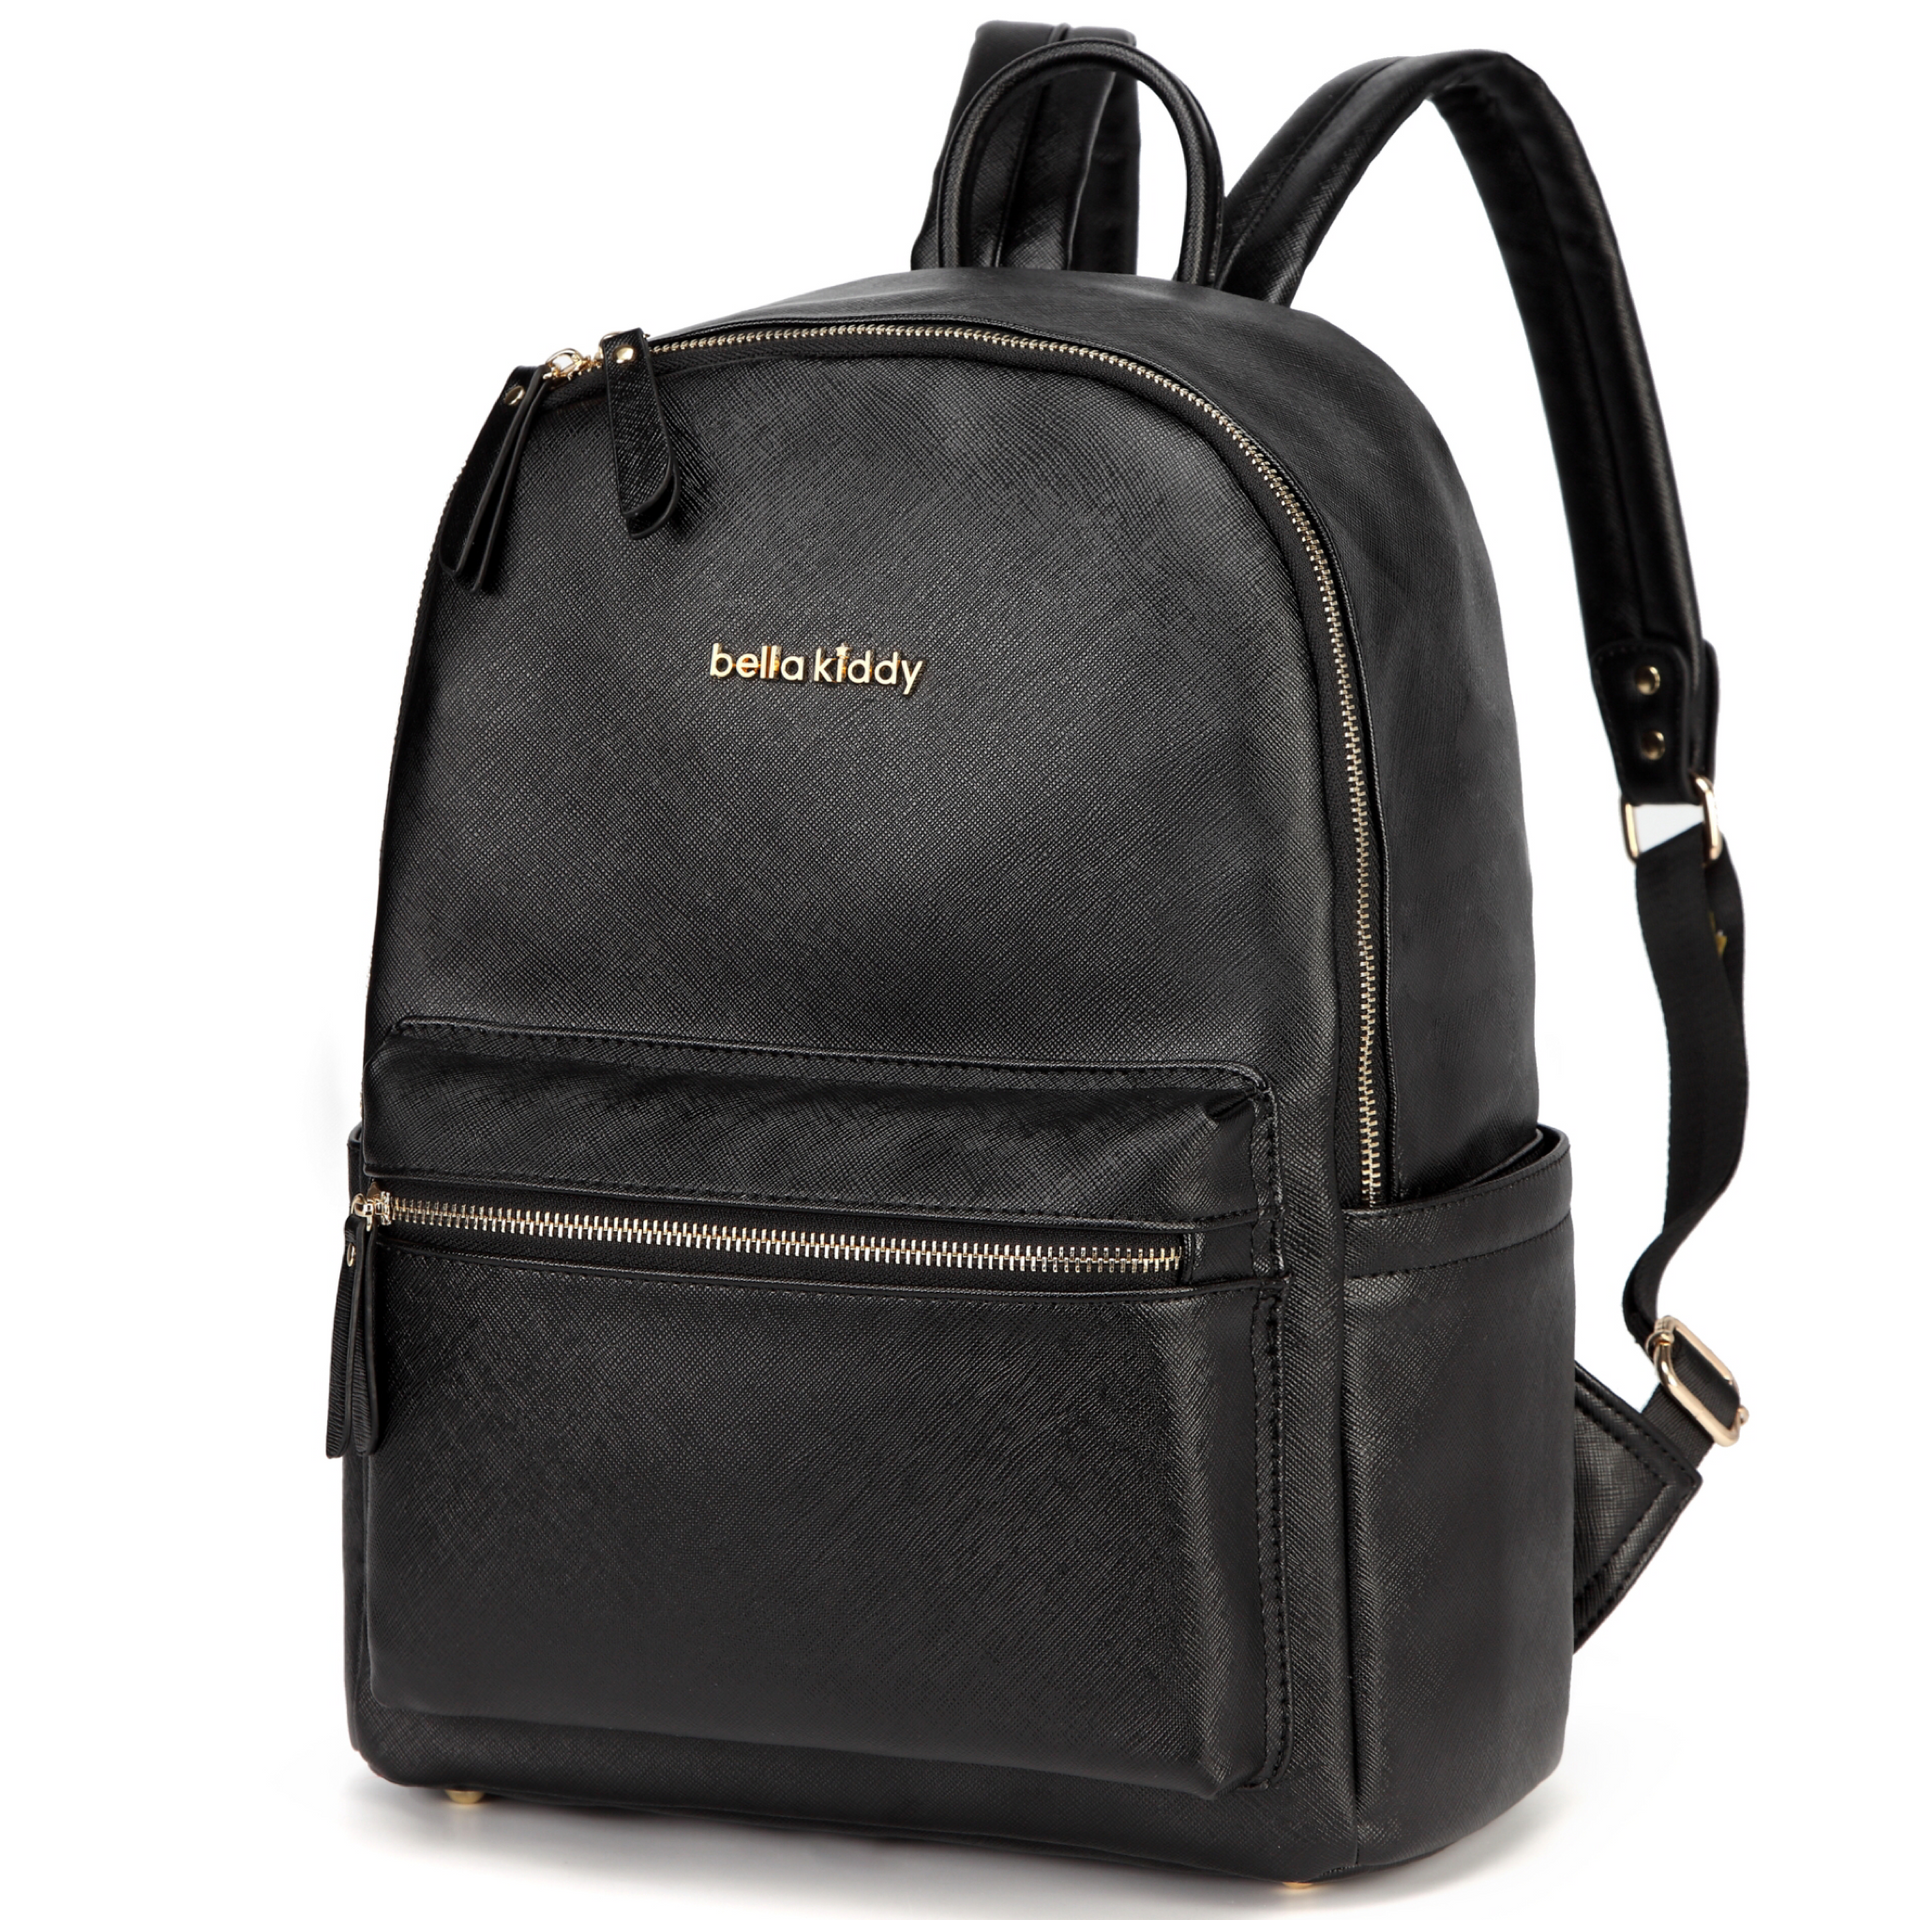 The Bella Kiddy Diaper Backpack